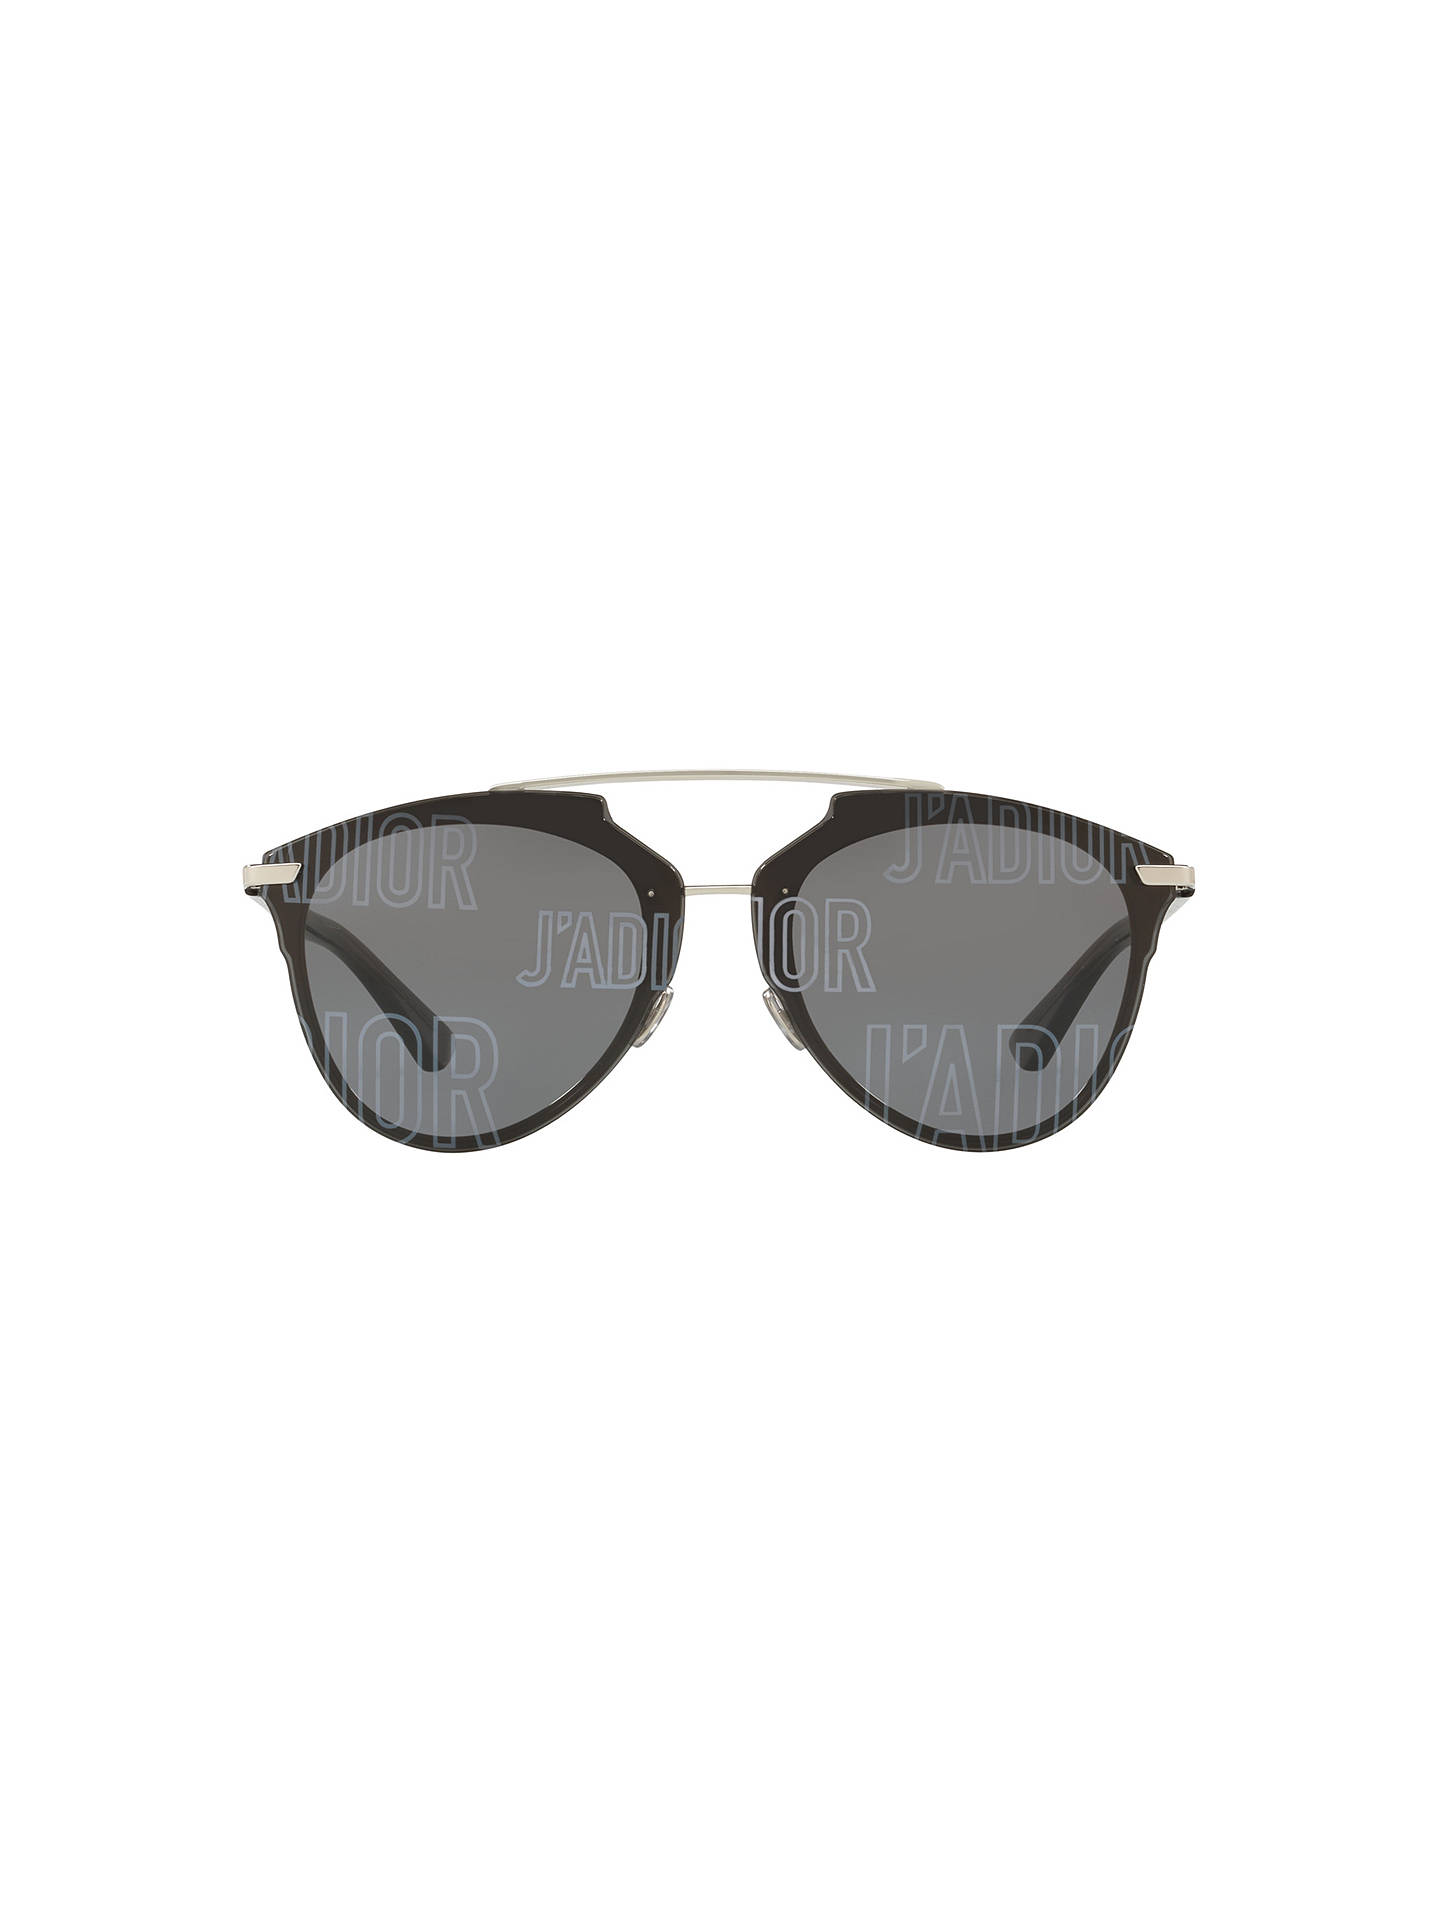 52560d4054ff Buy Dior J Adior Polarised Oval Sunglasses